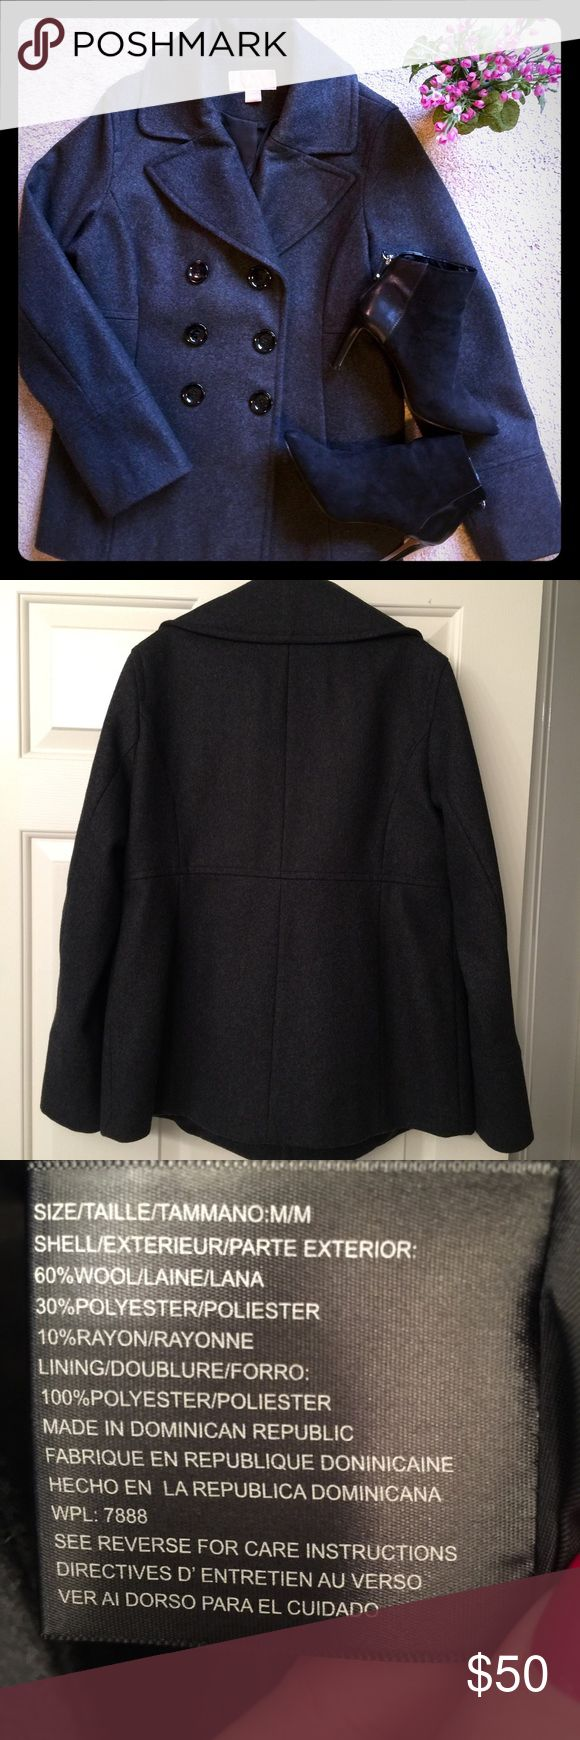 Michael Kors Women's Peacoat Charcoal Gray double breasted wool coat. Will keep you warm and stylish all winter long! Great for everyday wear or a night out!  Gently used and in excellent condition. MICHAEL Michael Kors Jackets & Coats Pea Coats